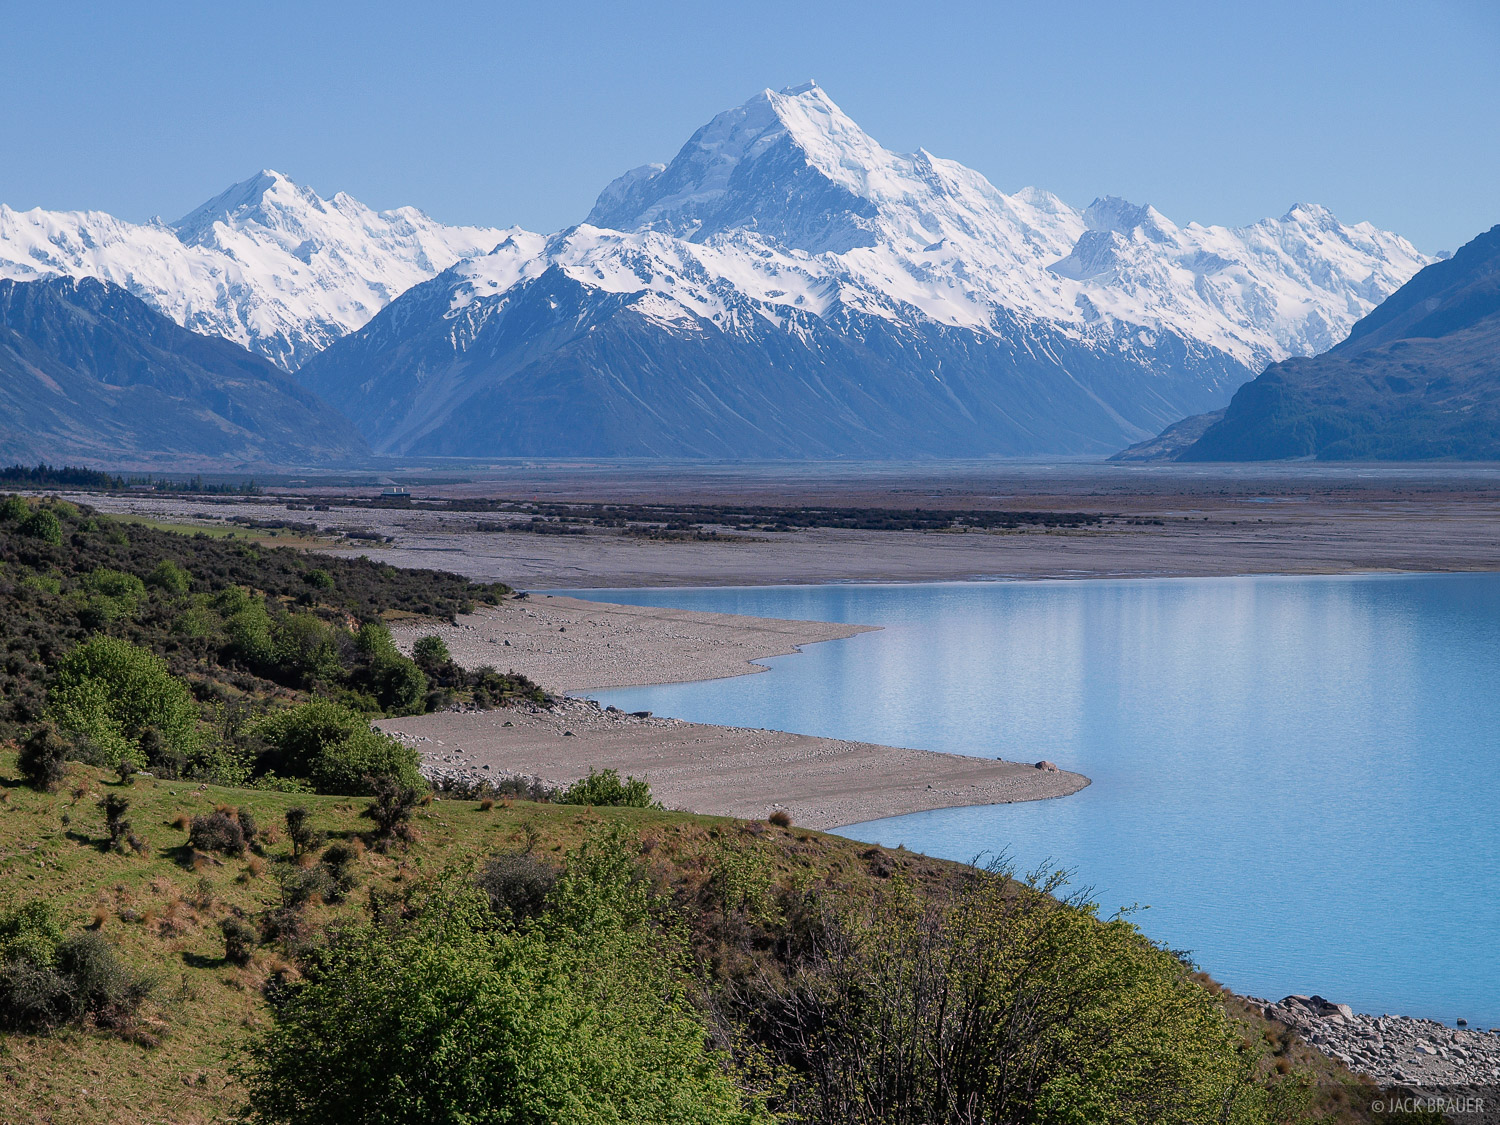 New Zealand, Southern Alps, Aoraki, Mount Cook, Lake Pukaki, photo